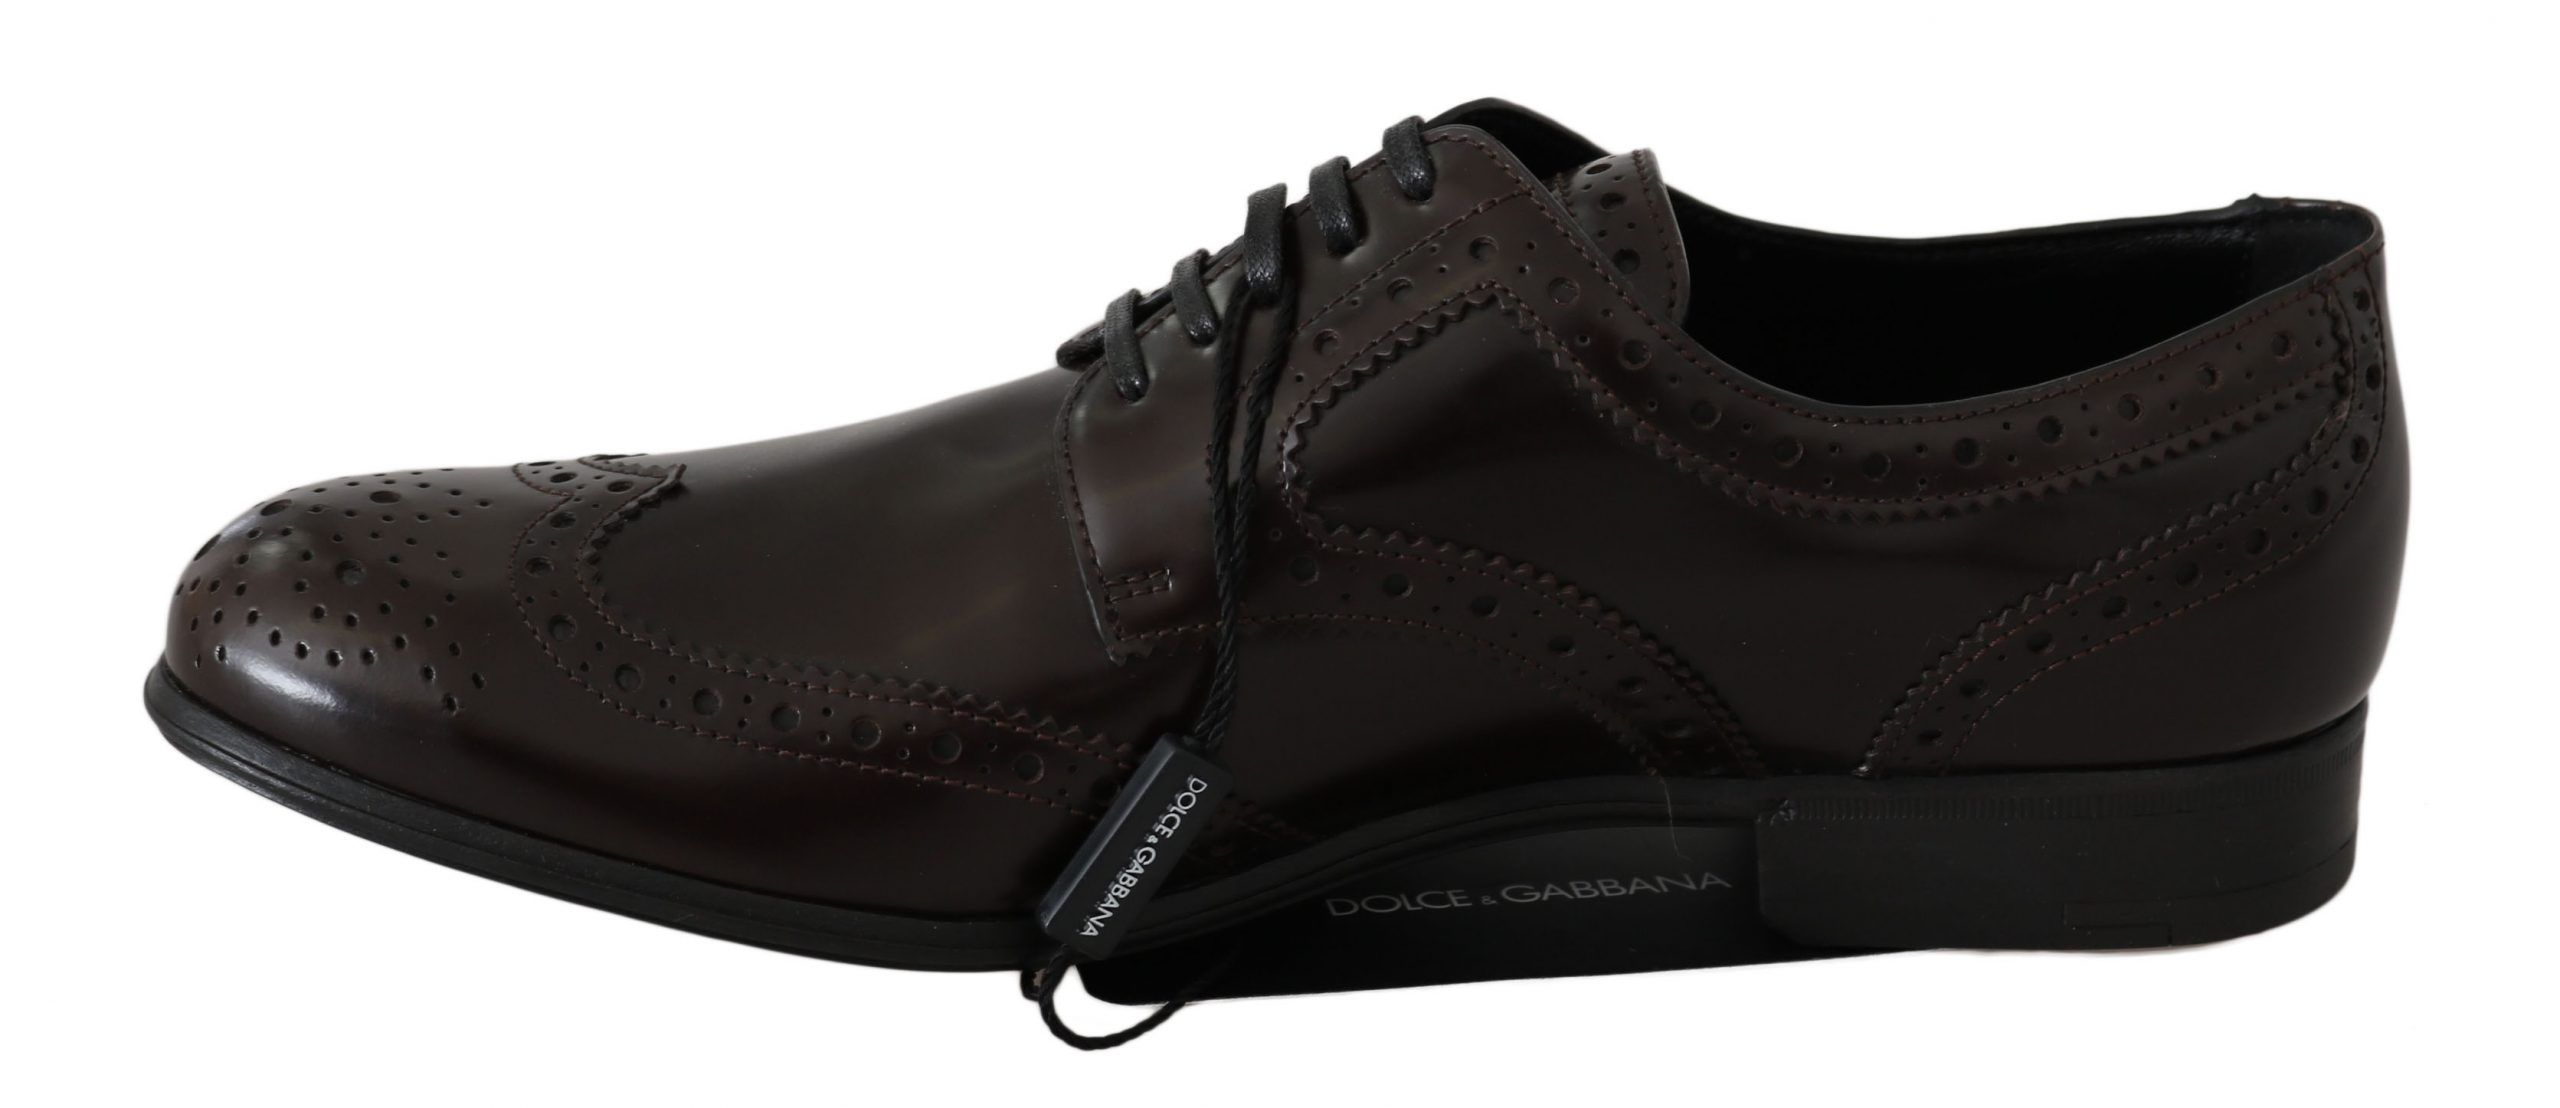 Dolce & Gabbana Brown Leather Broques Oxford Wingtip Shoes